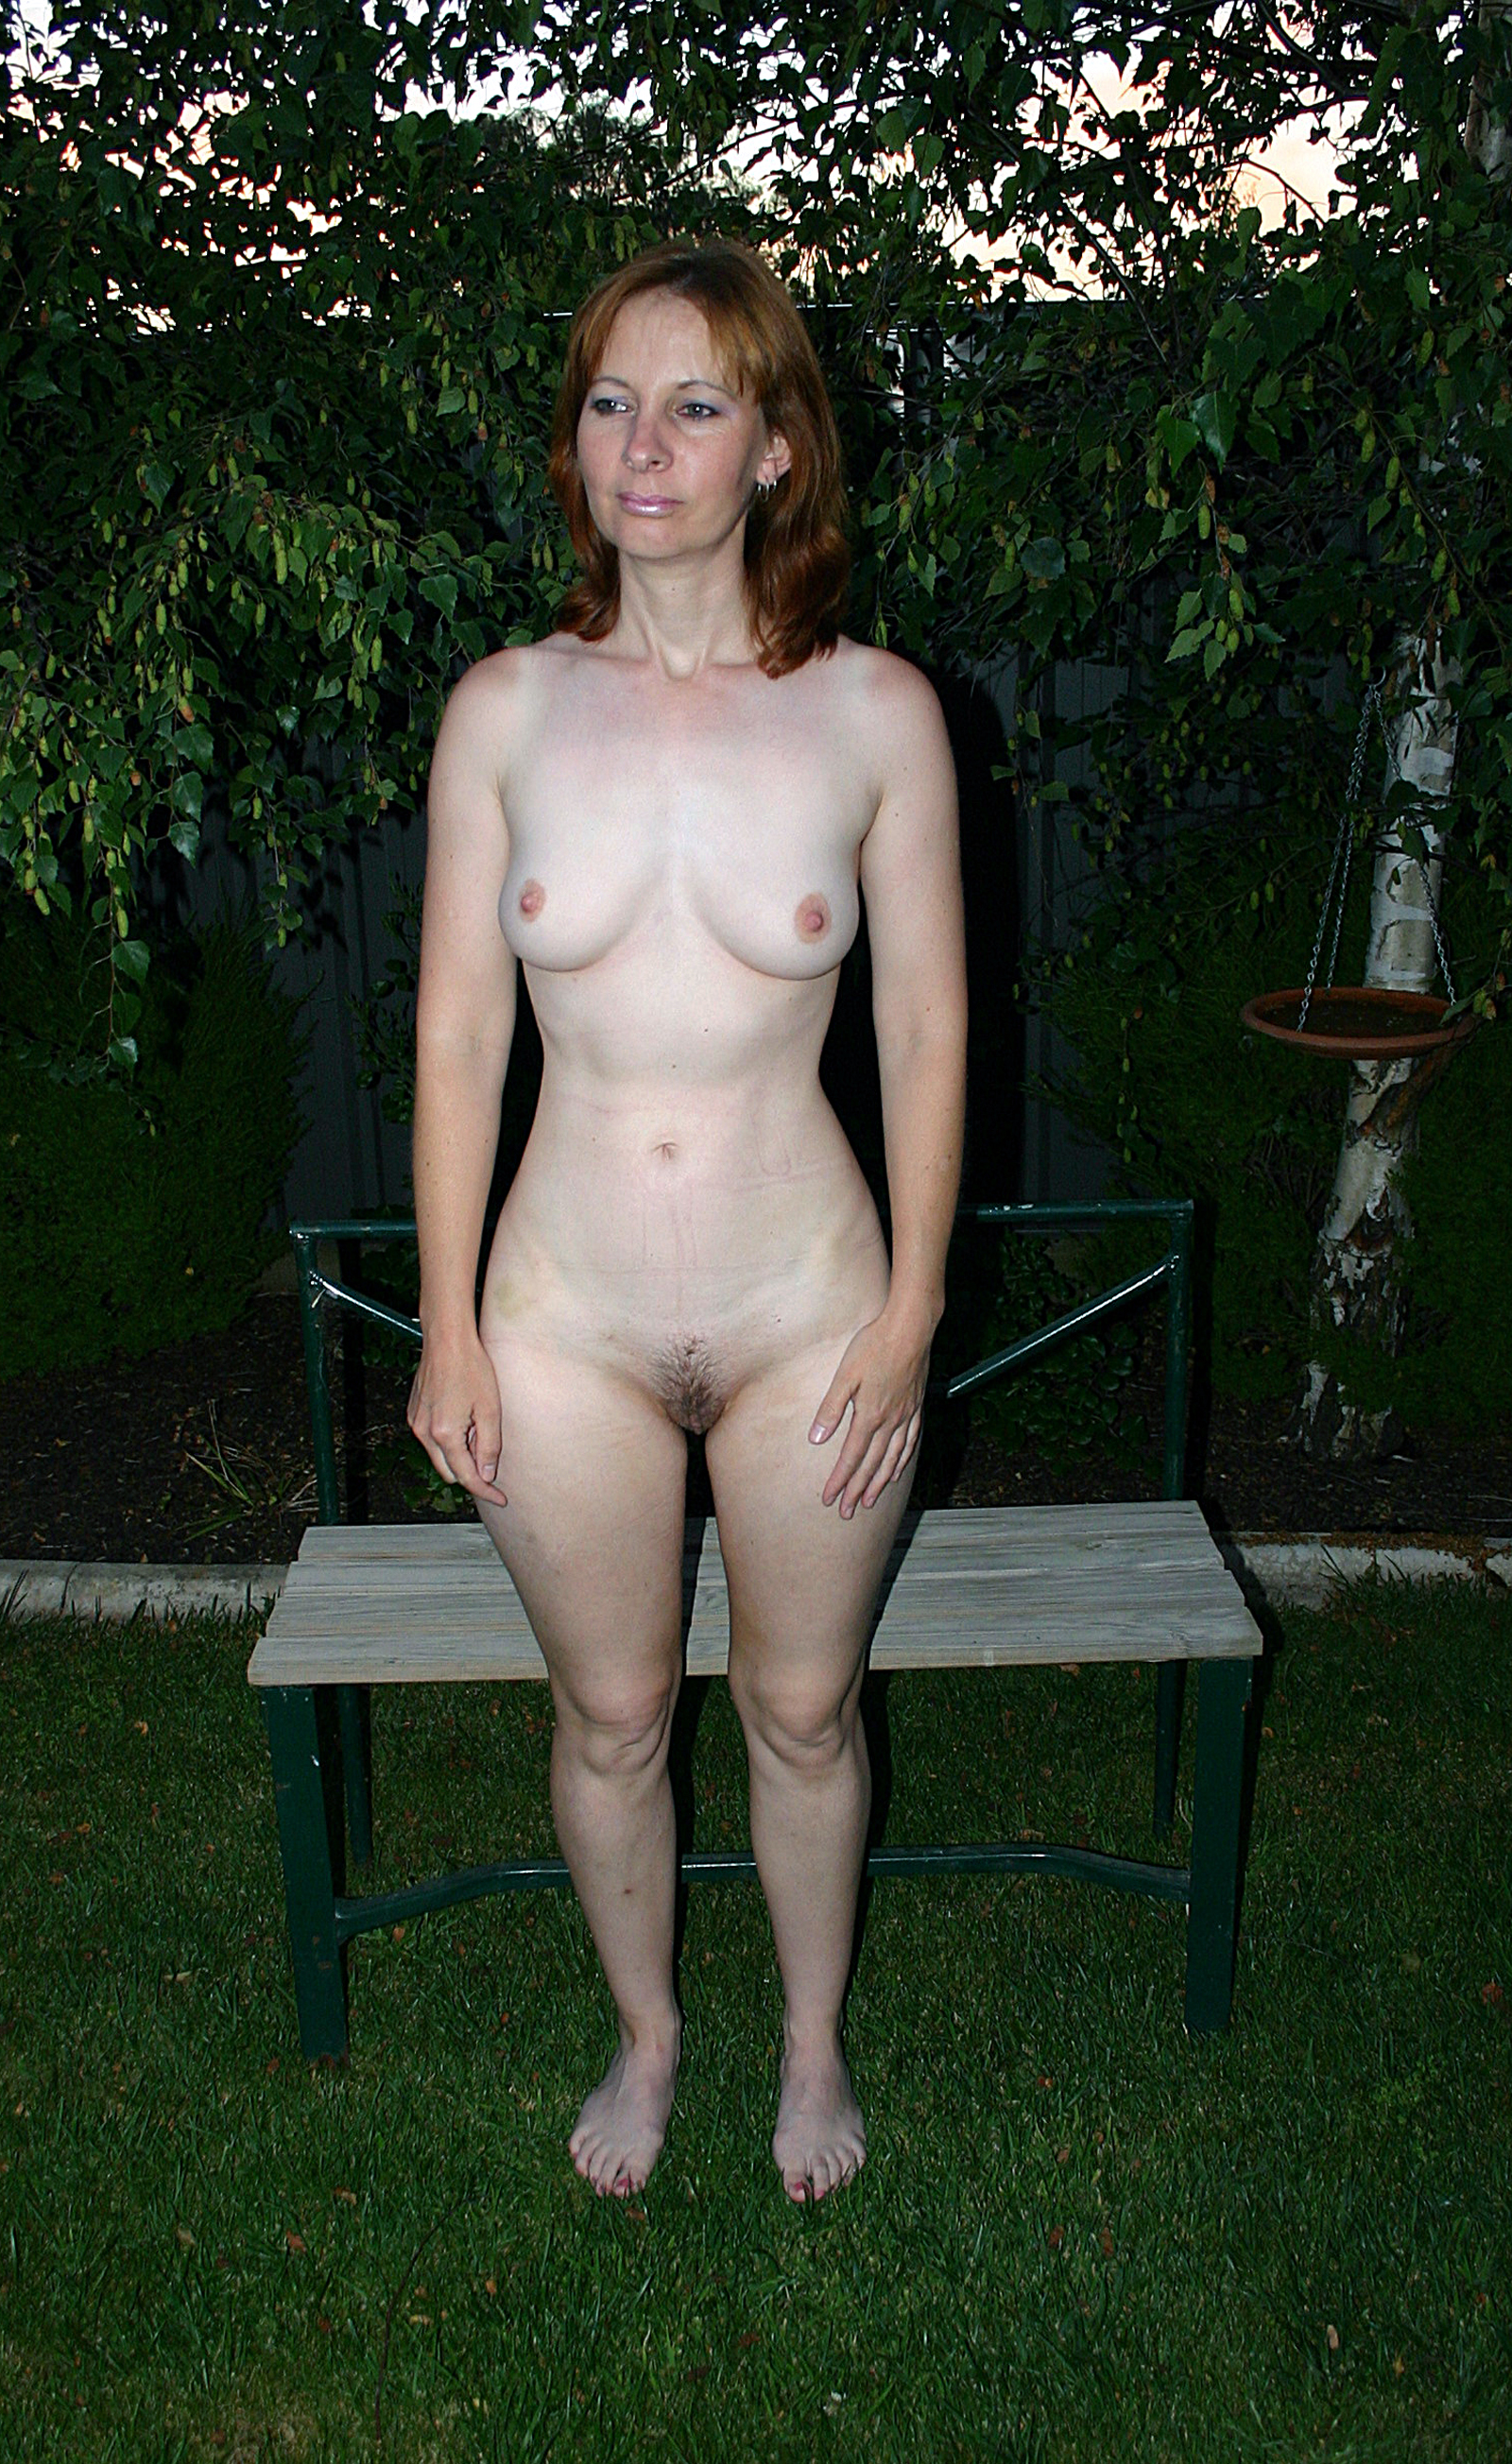 Full frontal girls naked idea and